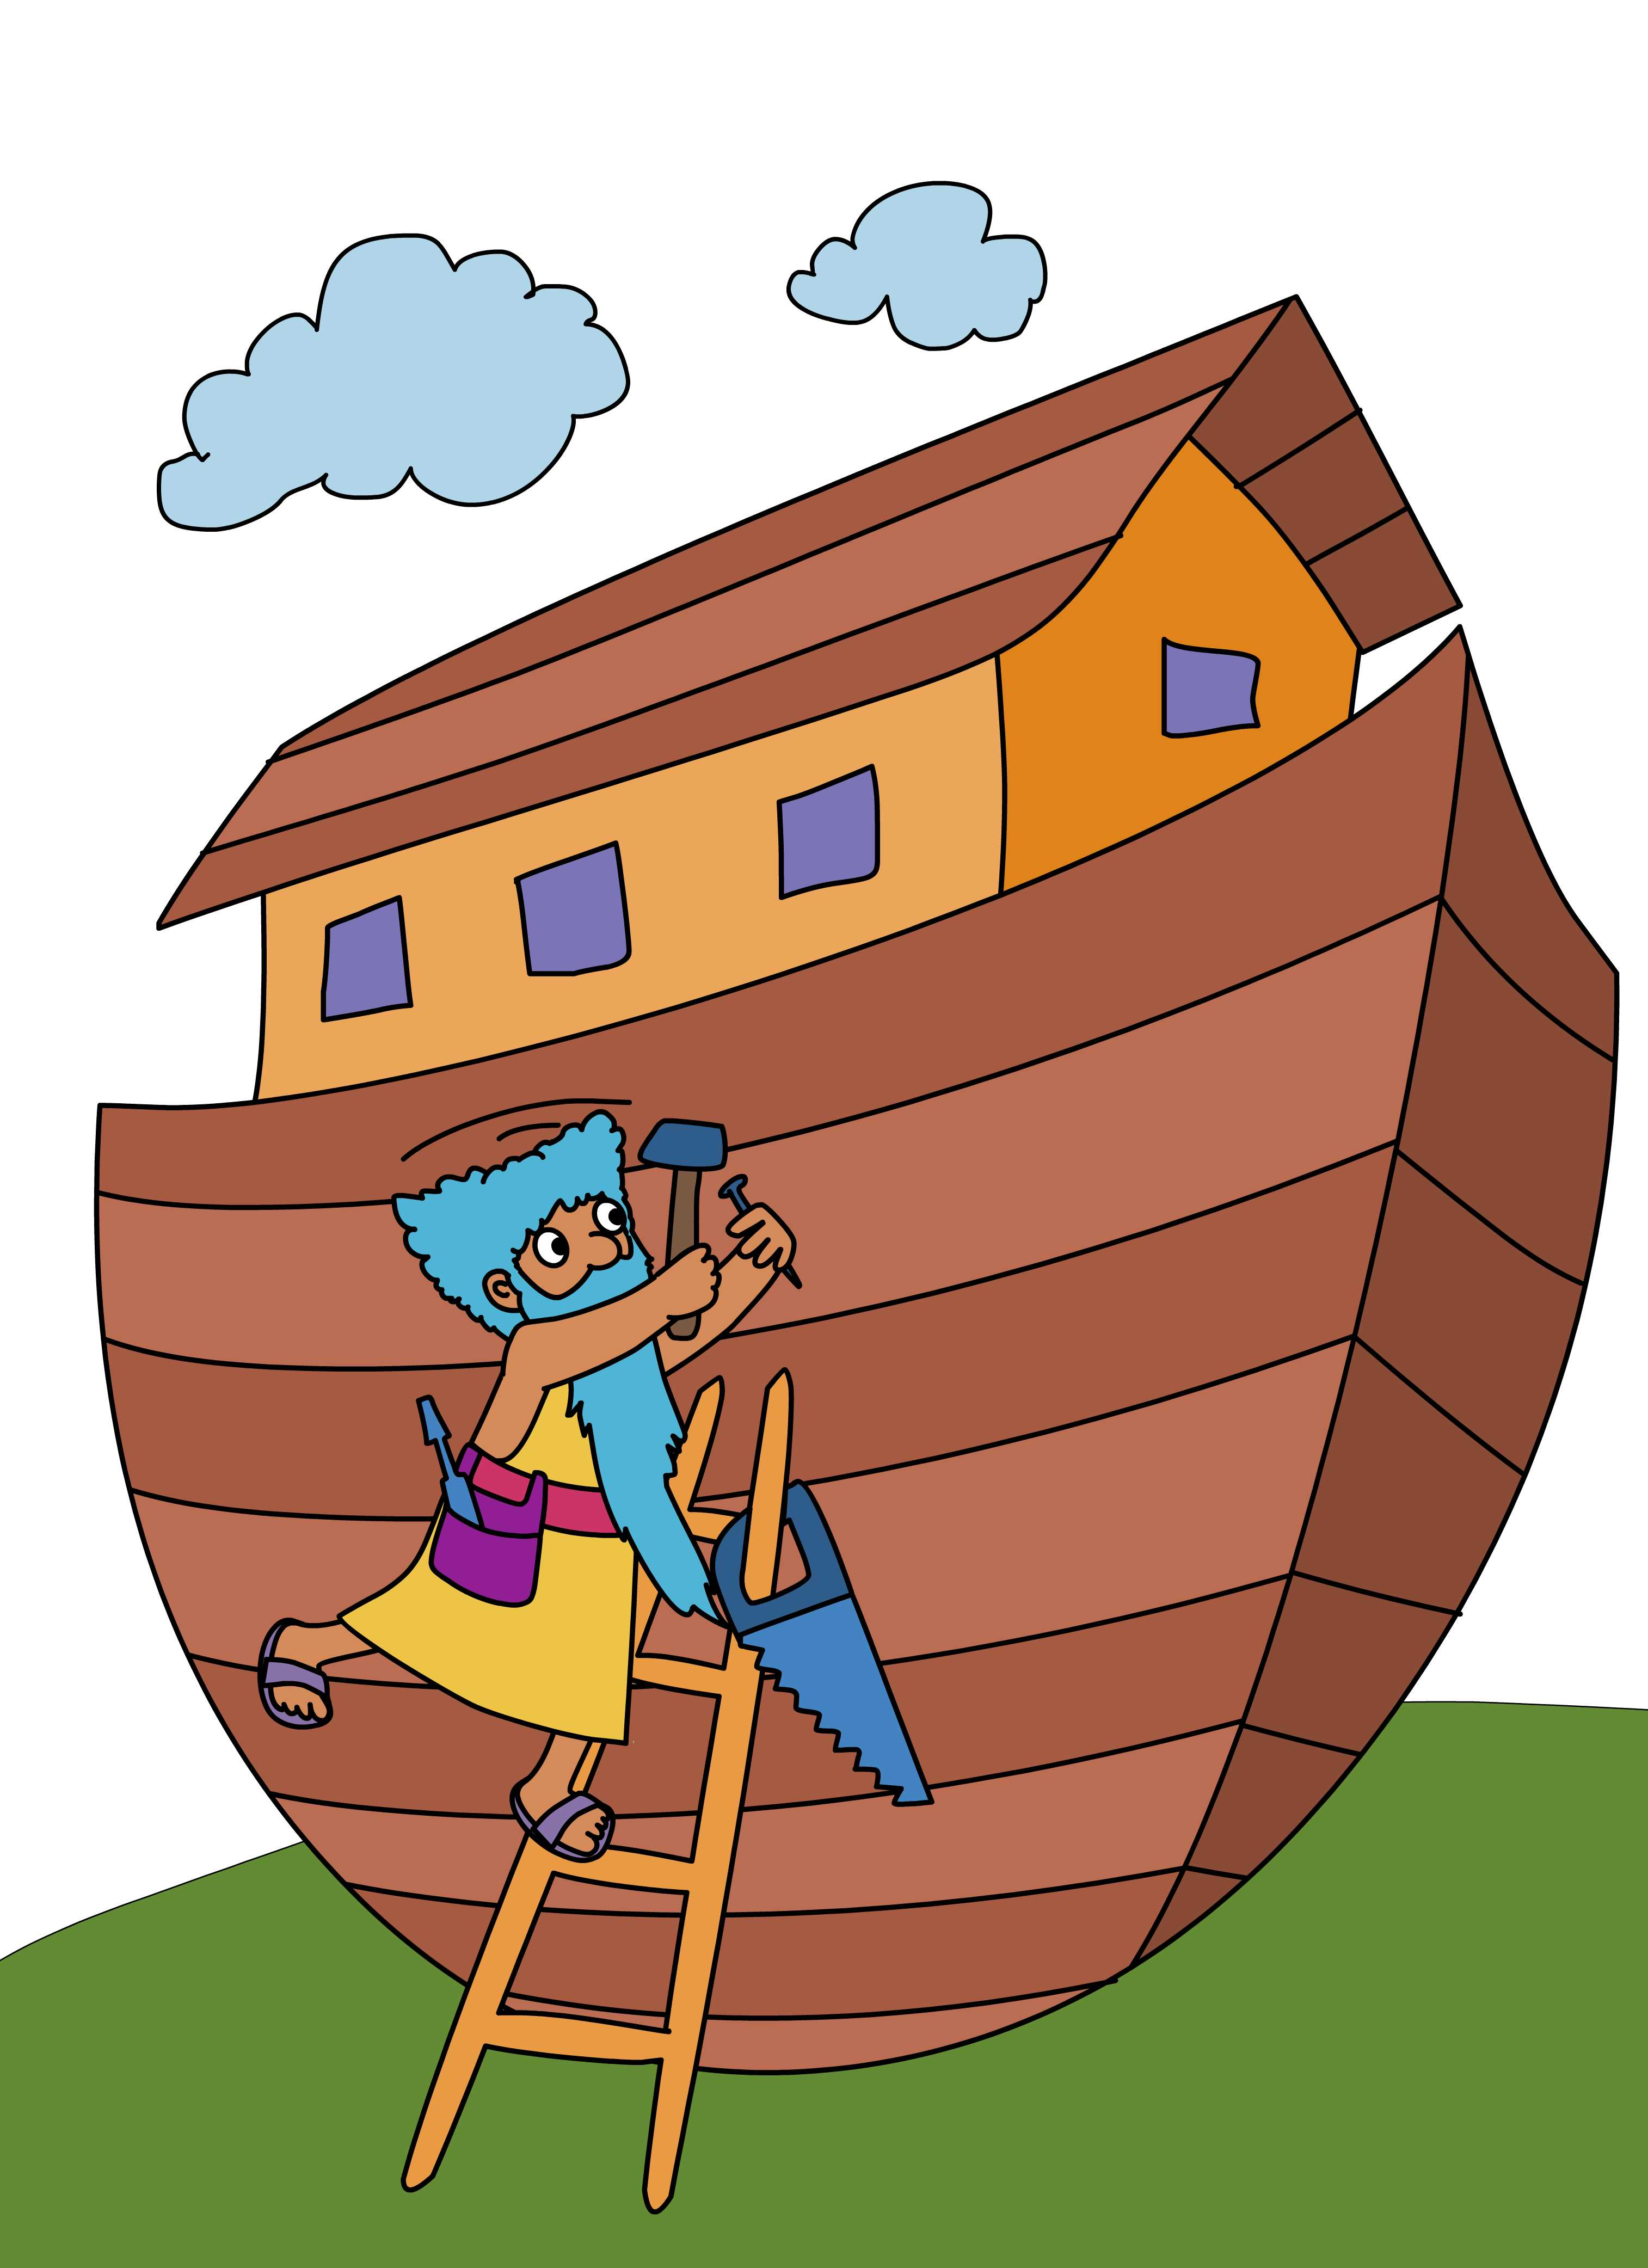 Noah and the ark story clipart.